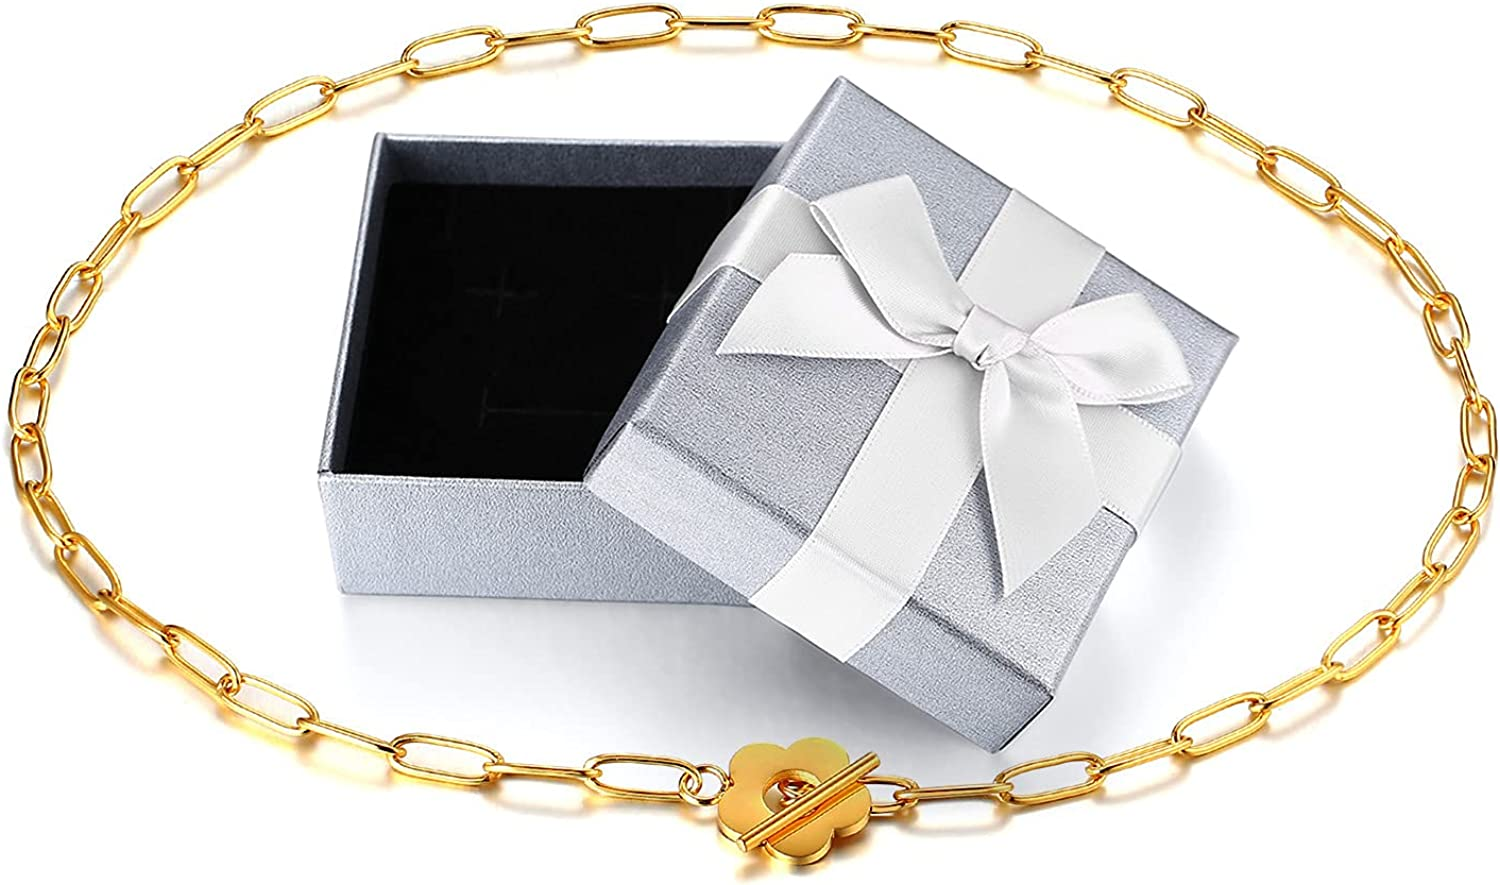 Gamtic Yellow Gold Paperclip Link Bracelet Girls for Women Flowe Ranking TOP8 SEAL limited product